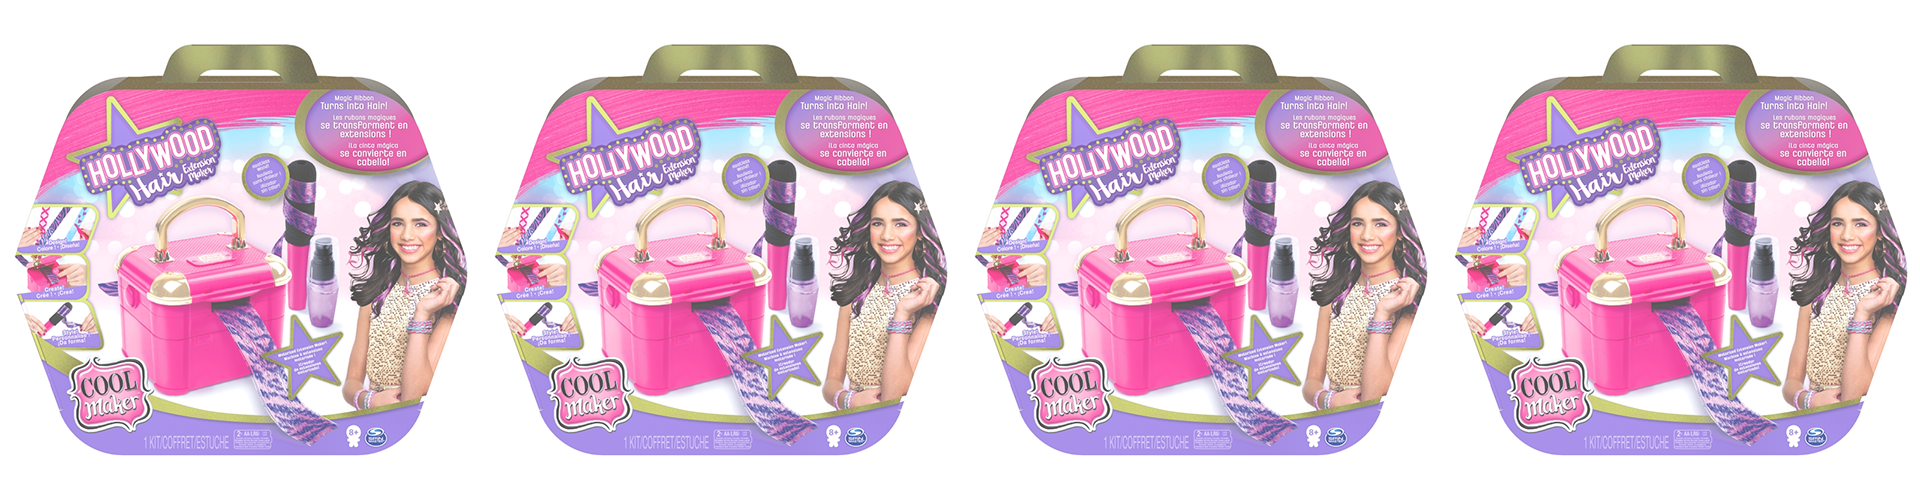 Hollywood Hair Extension Maker Review banner